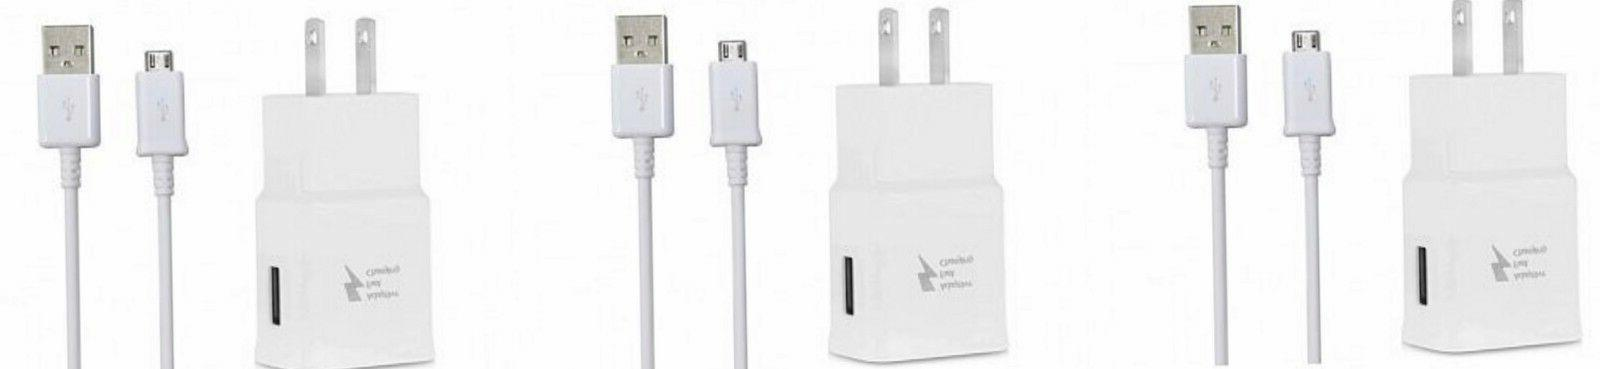 Lot Adaptive Fast Rapid Charger USB Cable For S7 5